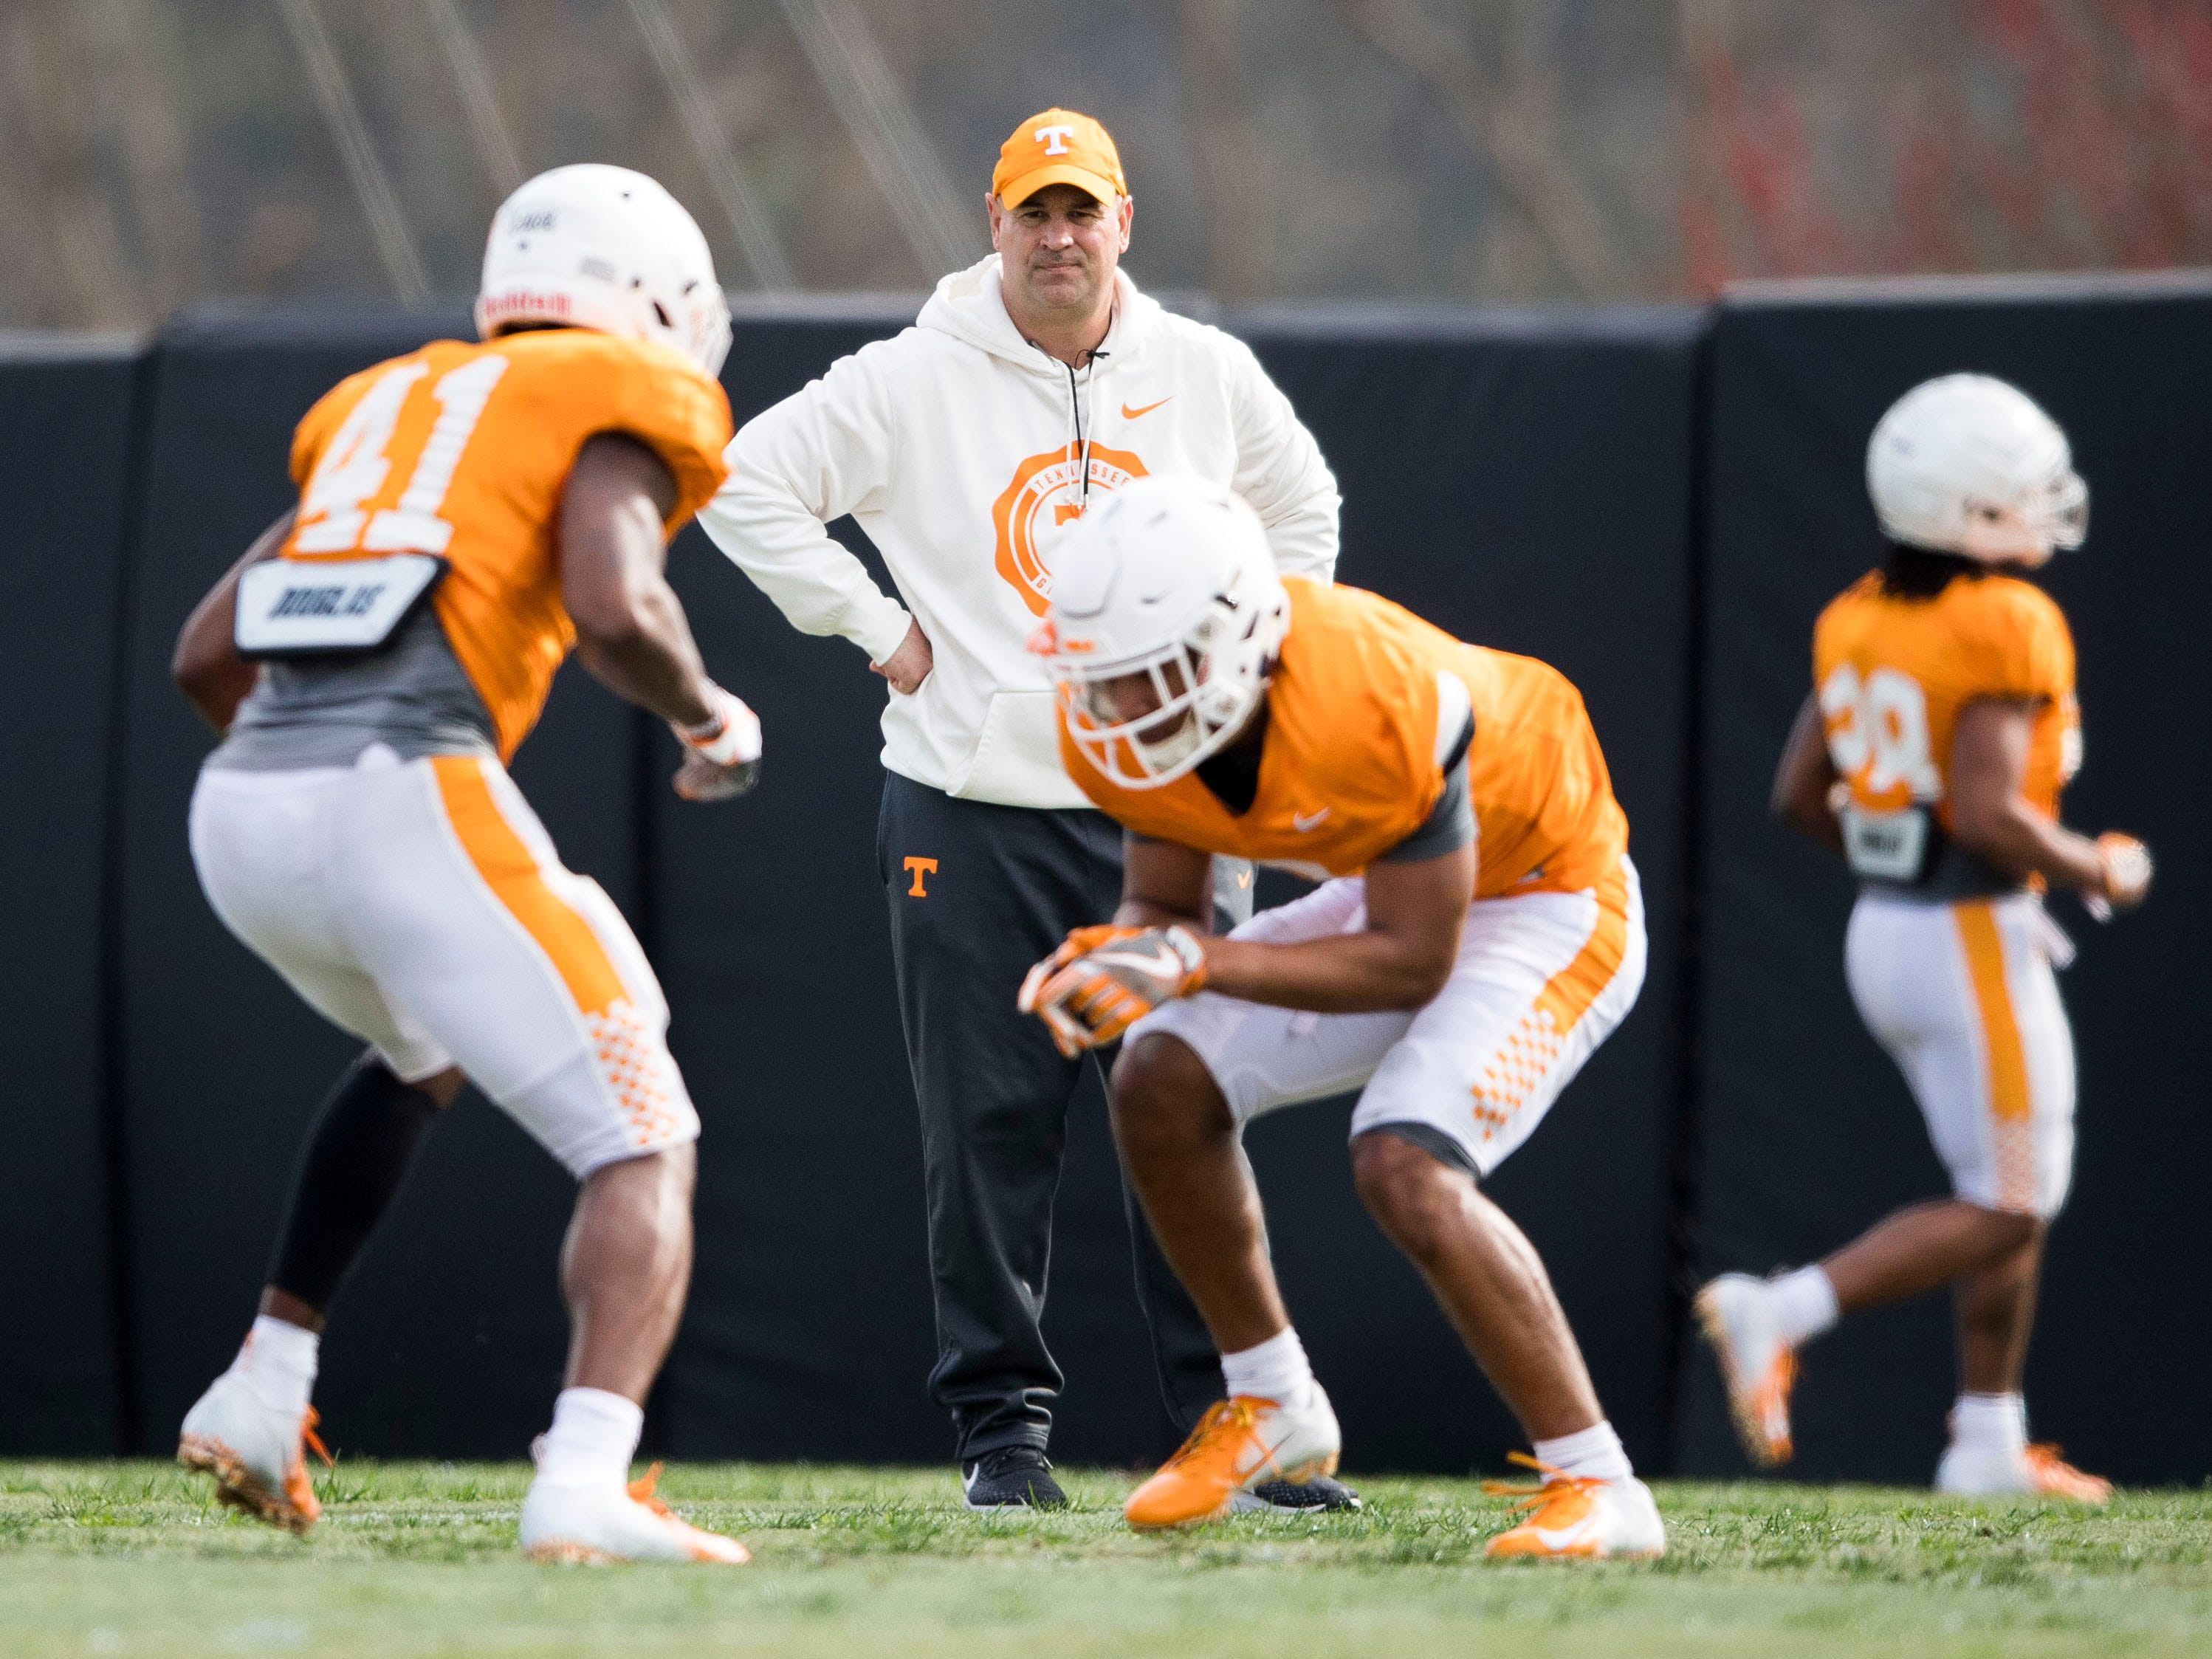 Tennessee head coach Jeremy Pruitt watches defensive backs Kenneth George Jr. (41) and Romello Edwards (7) during Tennessee's afternoon football practice on Monday, March 11, 2019.